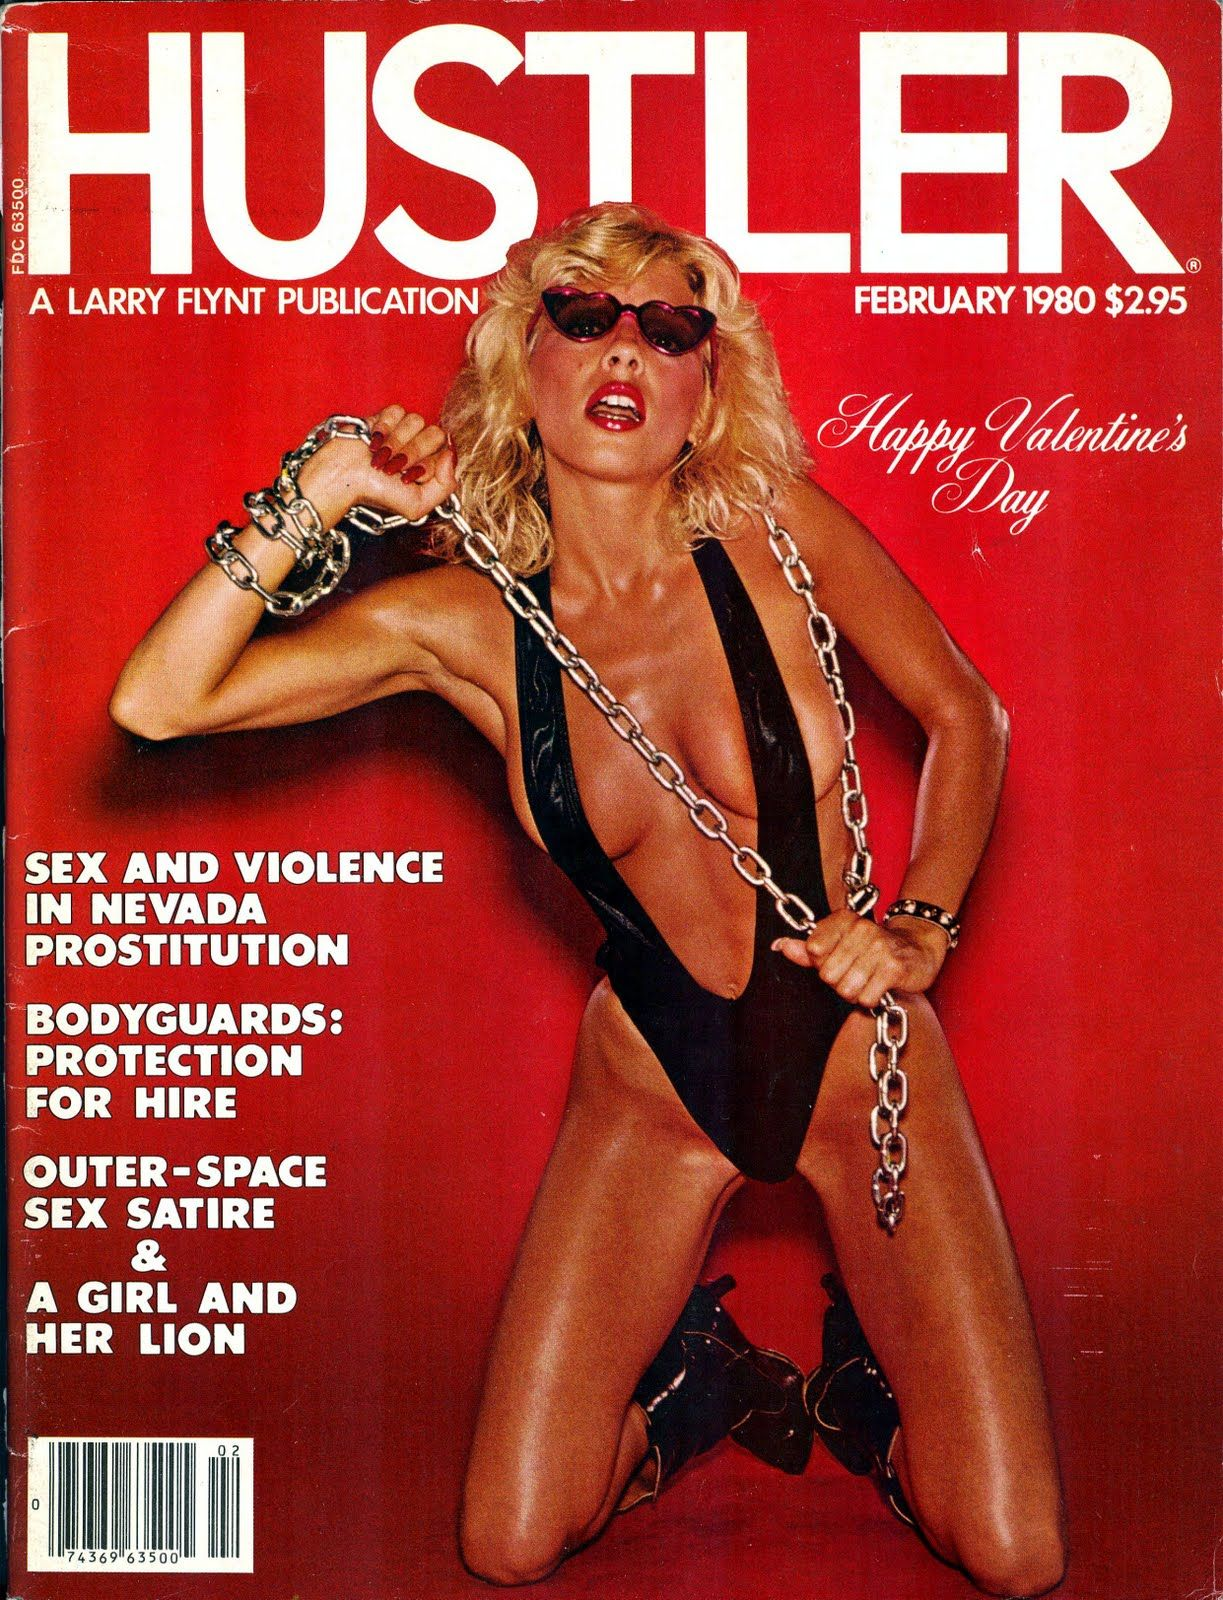 Hustler covers 80s